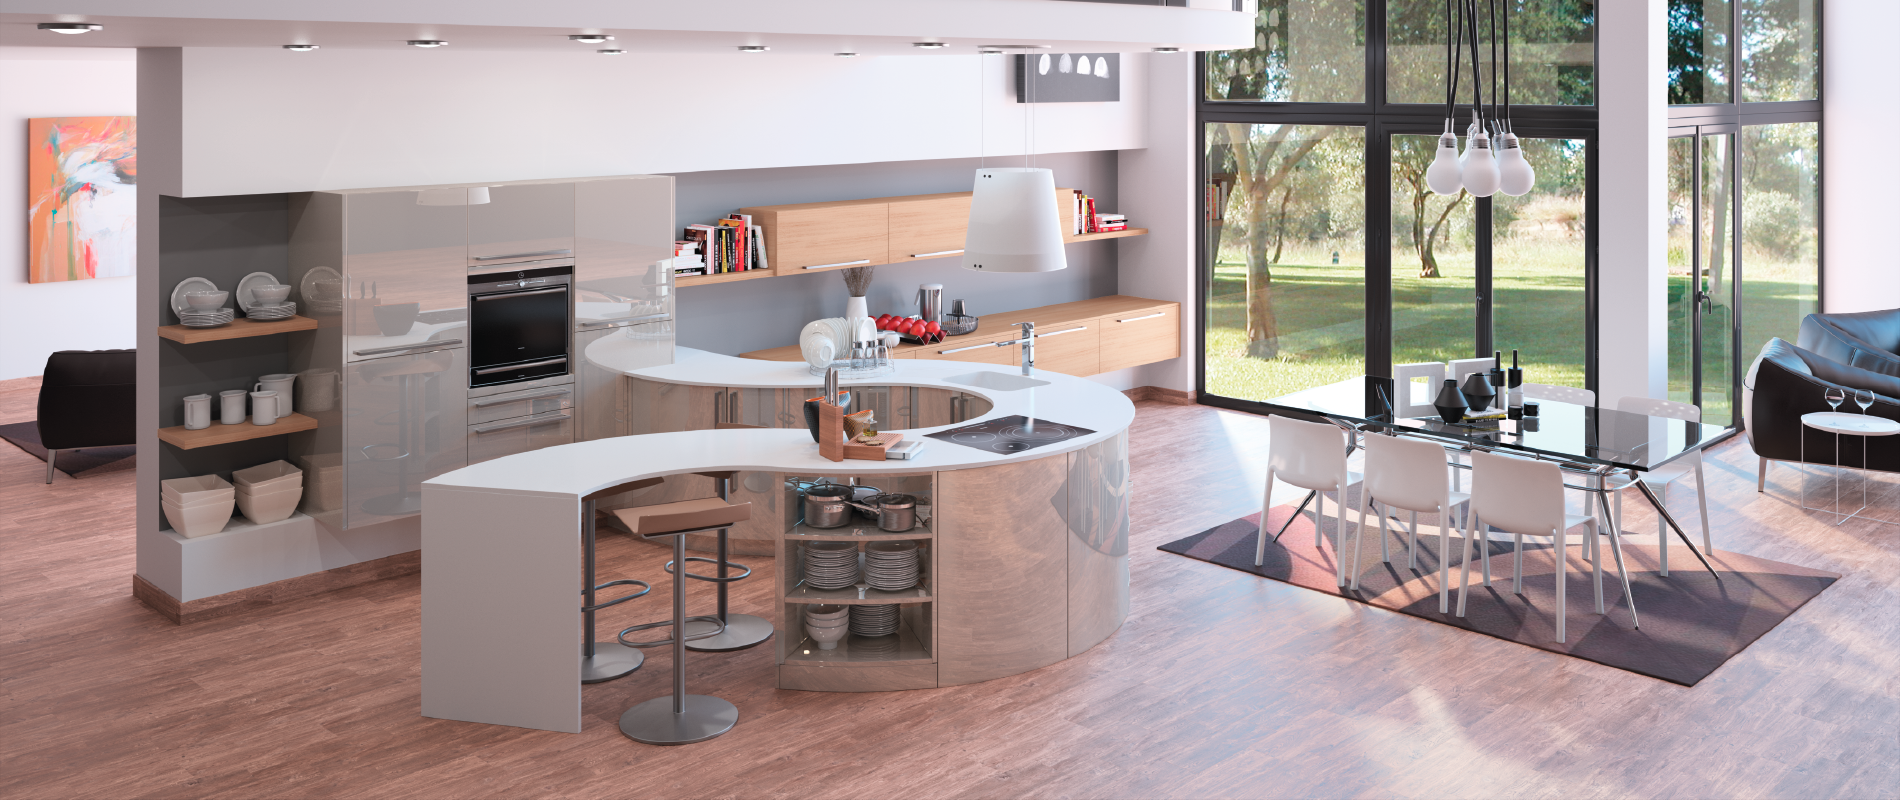 Cuisine design originale alicante zaho qualit sur for Cuisine design 2016